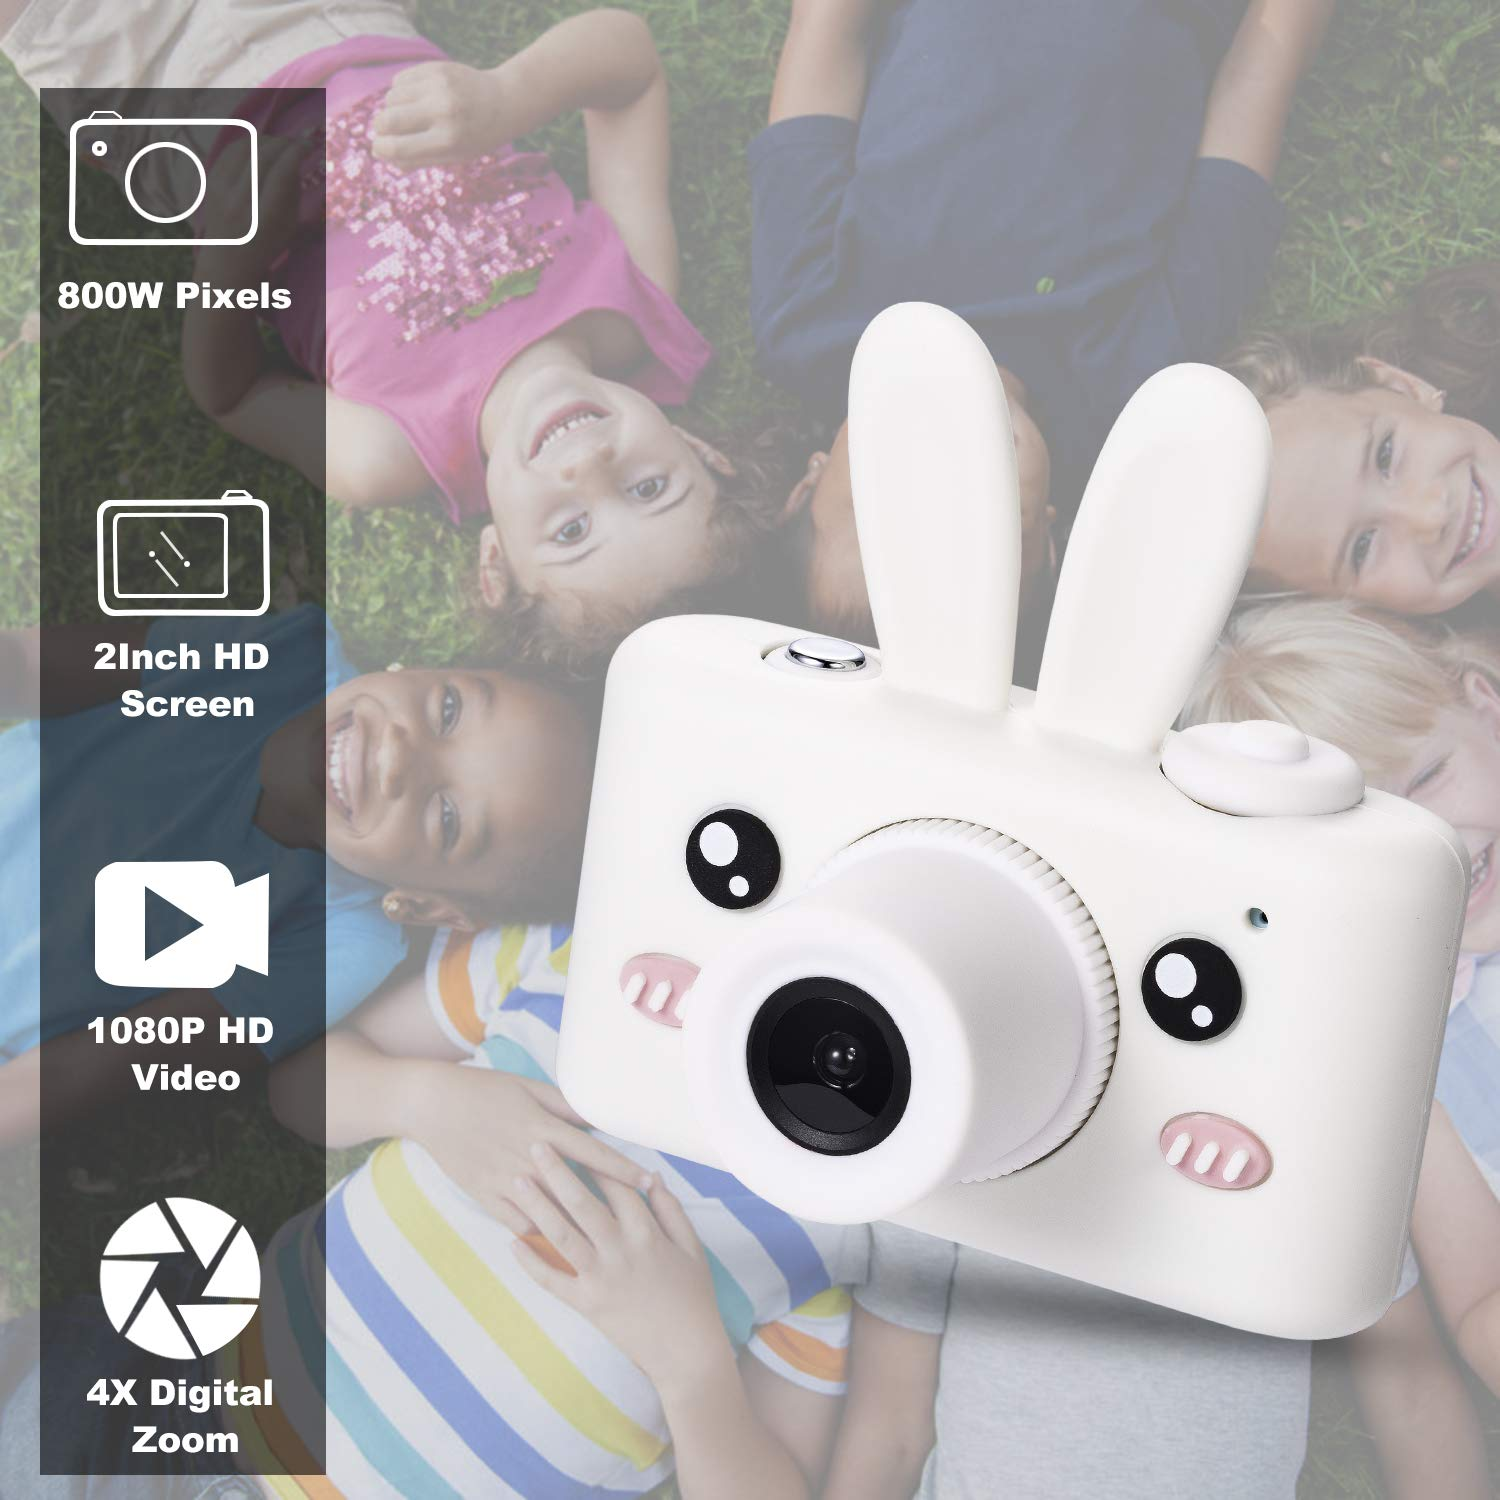 Abdtech Gifts Rabbit Kids Camera, Rechargeable Digital Cameras with Shockproof Soft Cover, Mini Toy Cameras for 5-10 Years Old Girl Boys Including 16GB SD Card, Perfect for Birthday Festival Presents by Abdtech (Image #2)